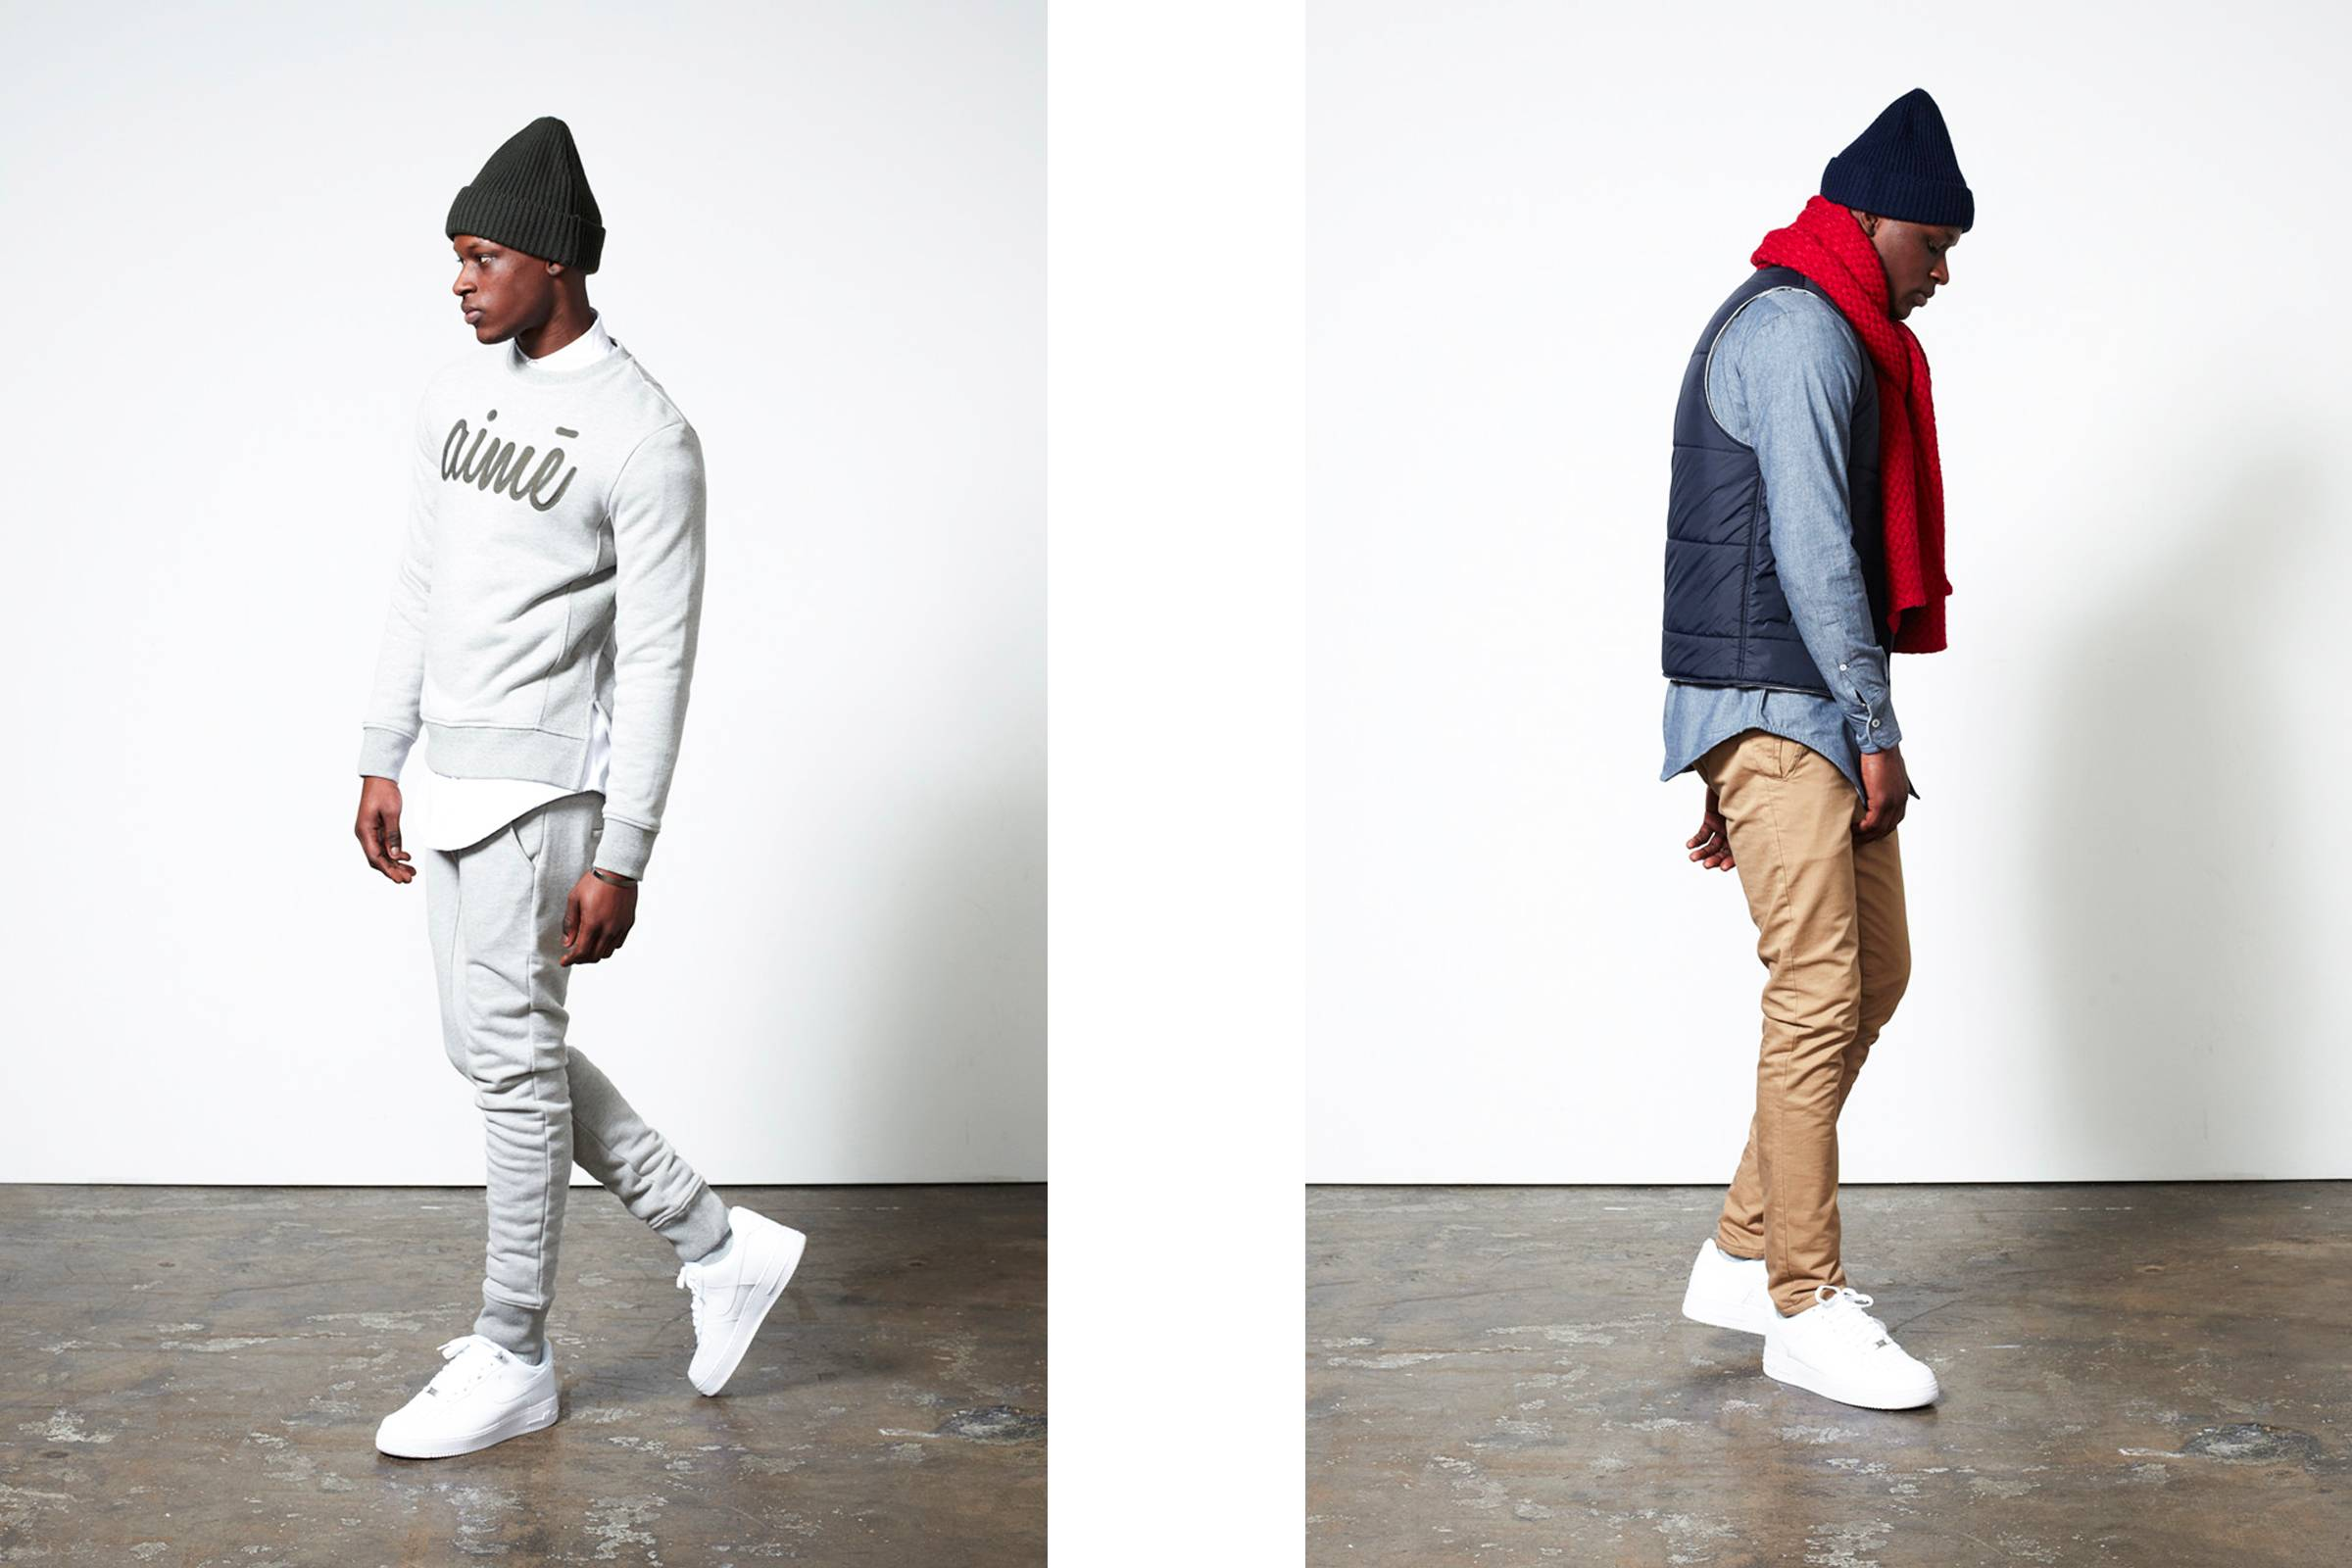 Looks from Aimé Leon Dore's debut first collection in 2014